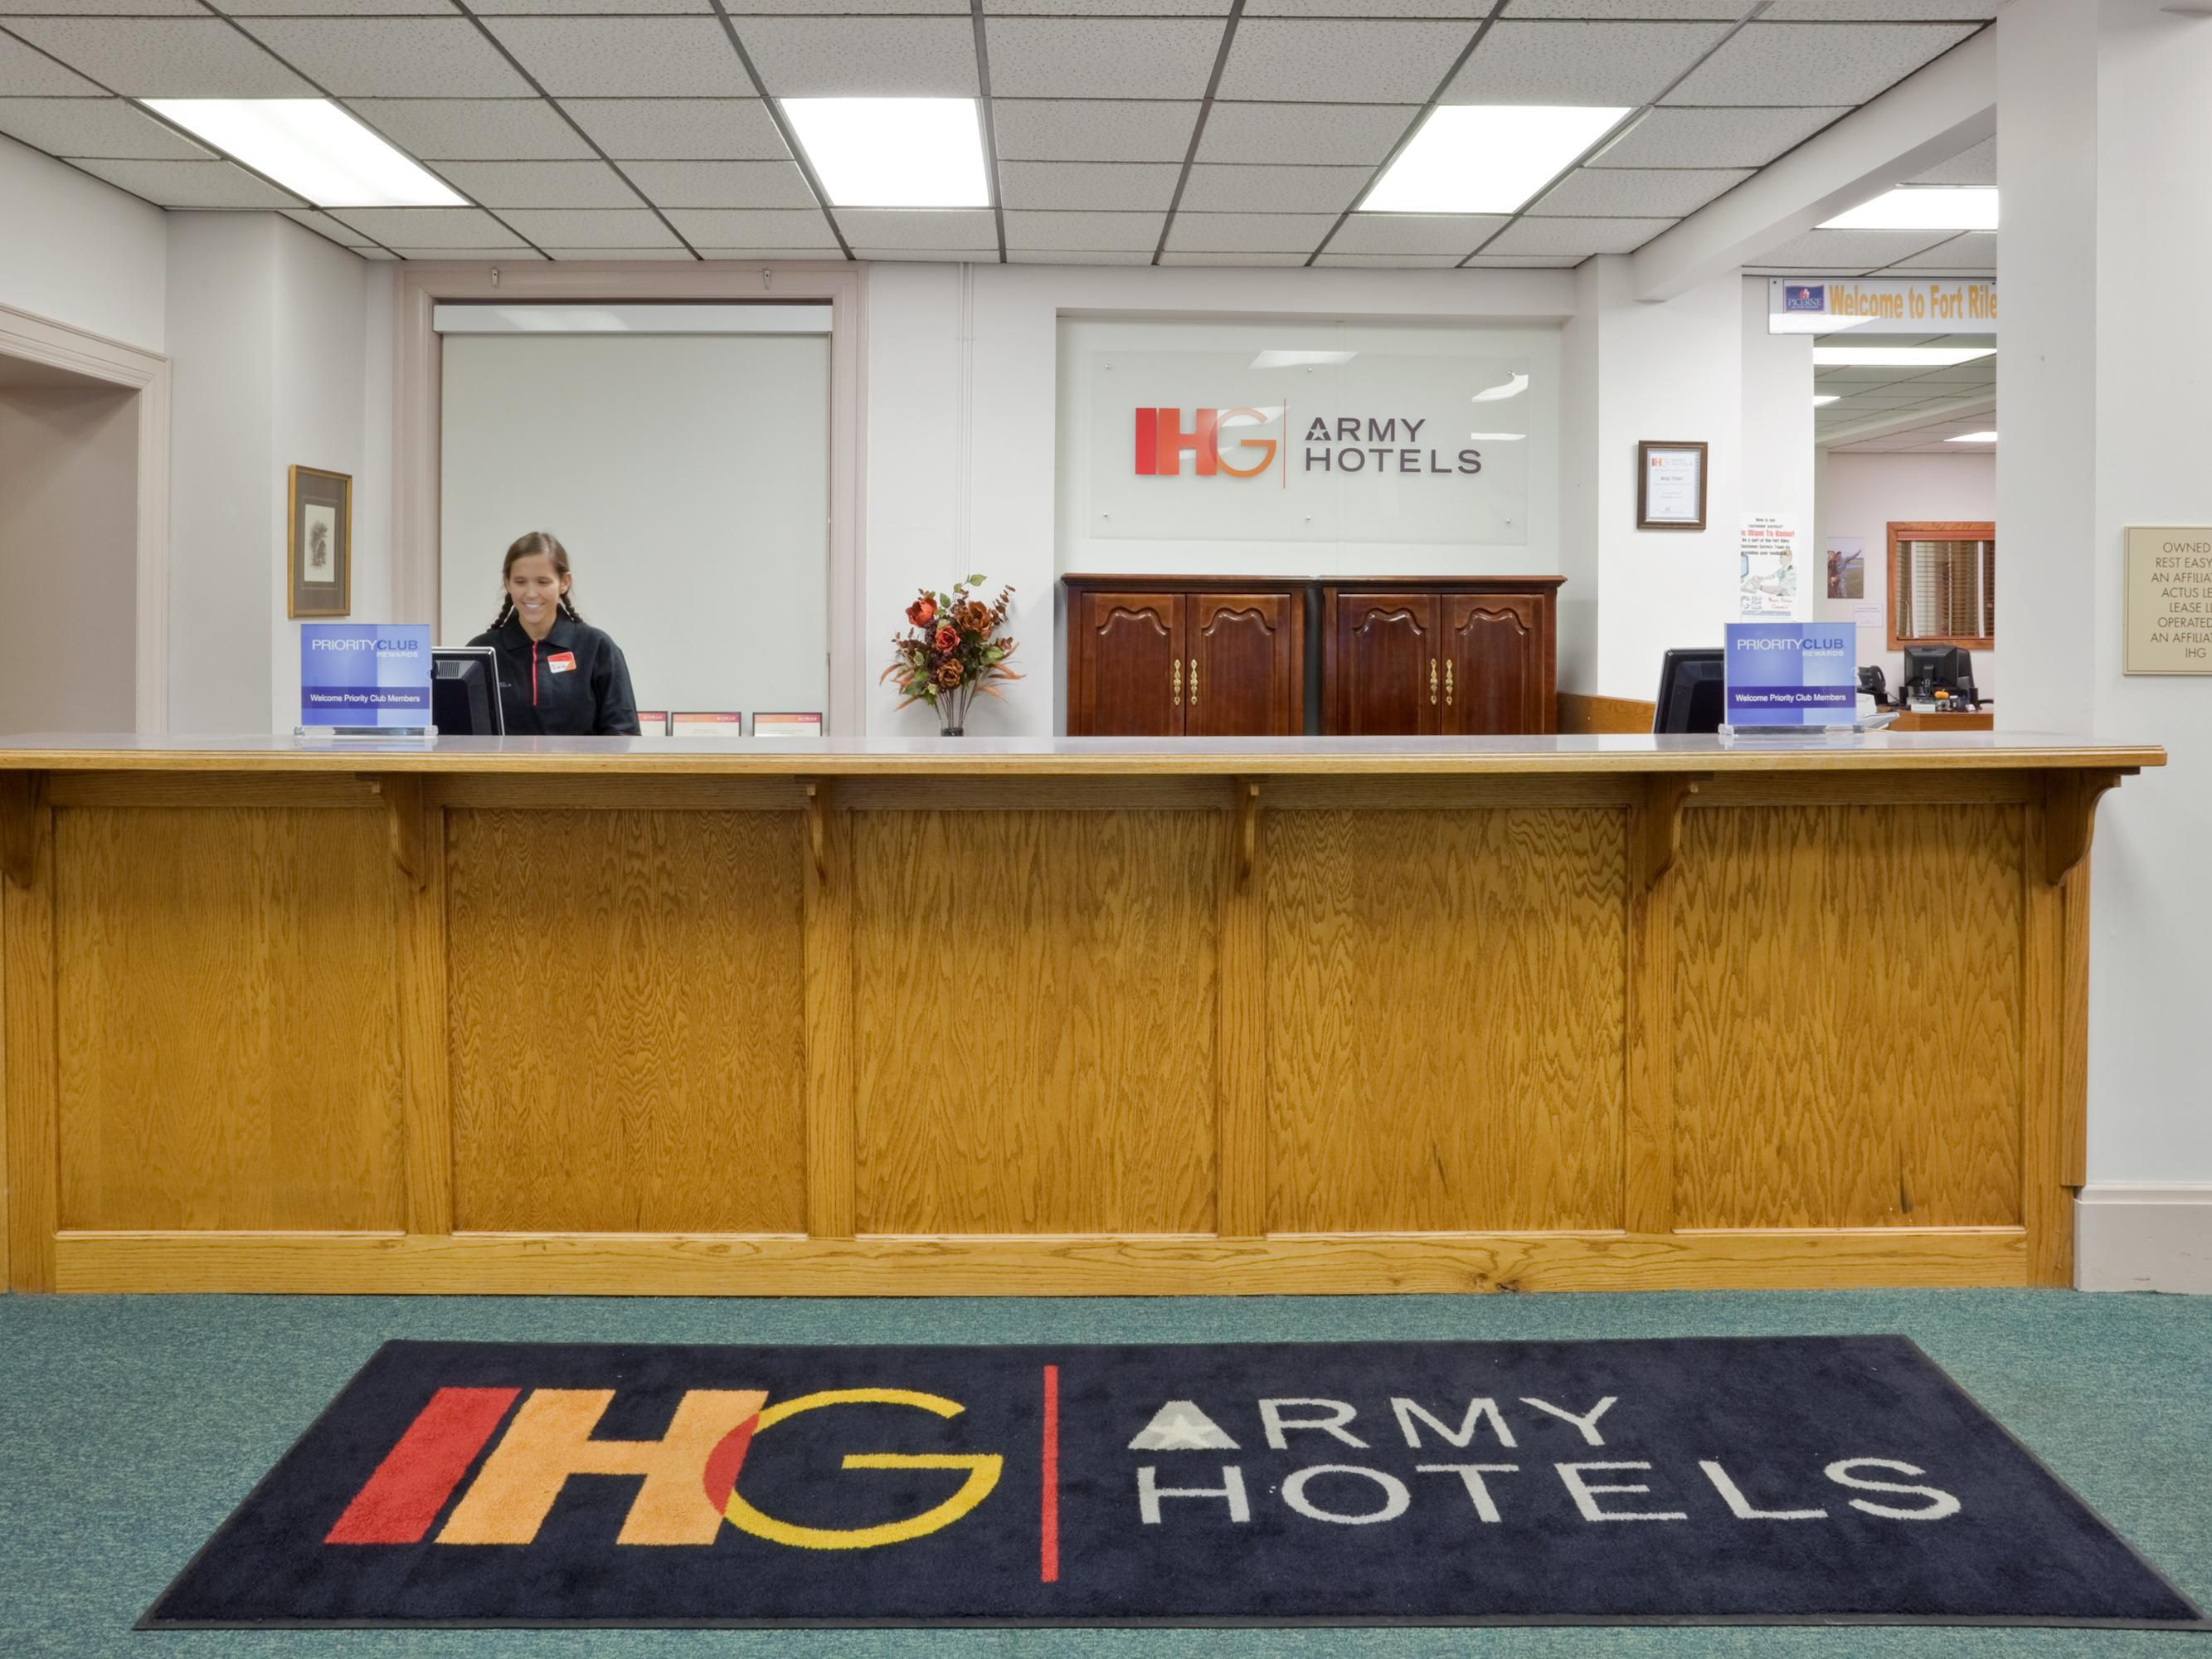 Awesome IHG Army Hotels Will Hall At Ft. Riley At Ft. Riley, Kansas